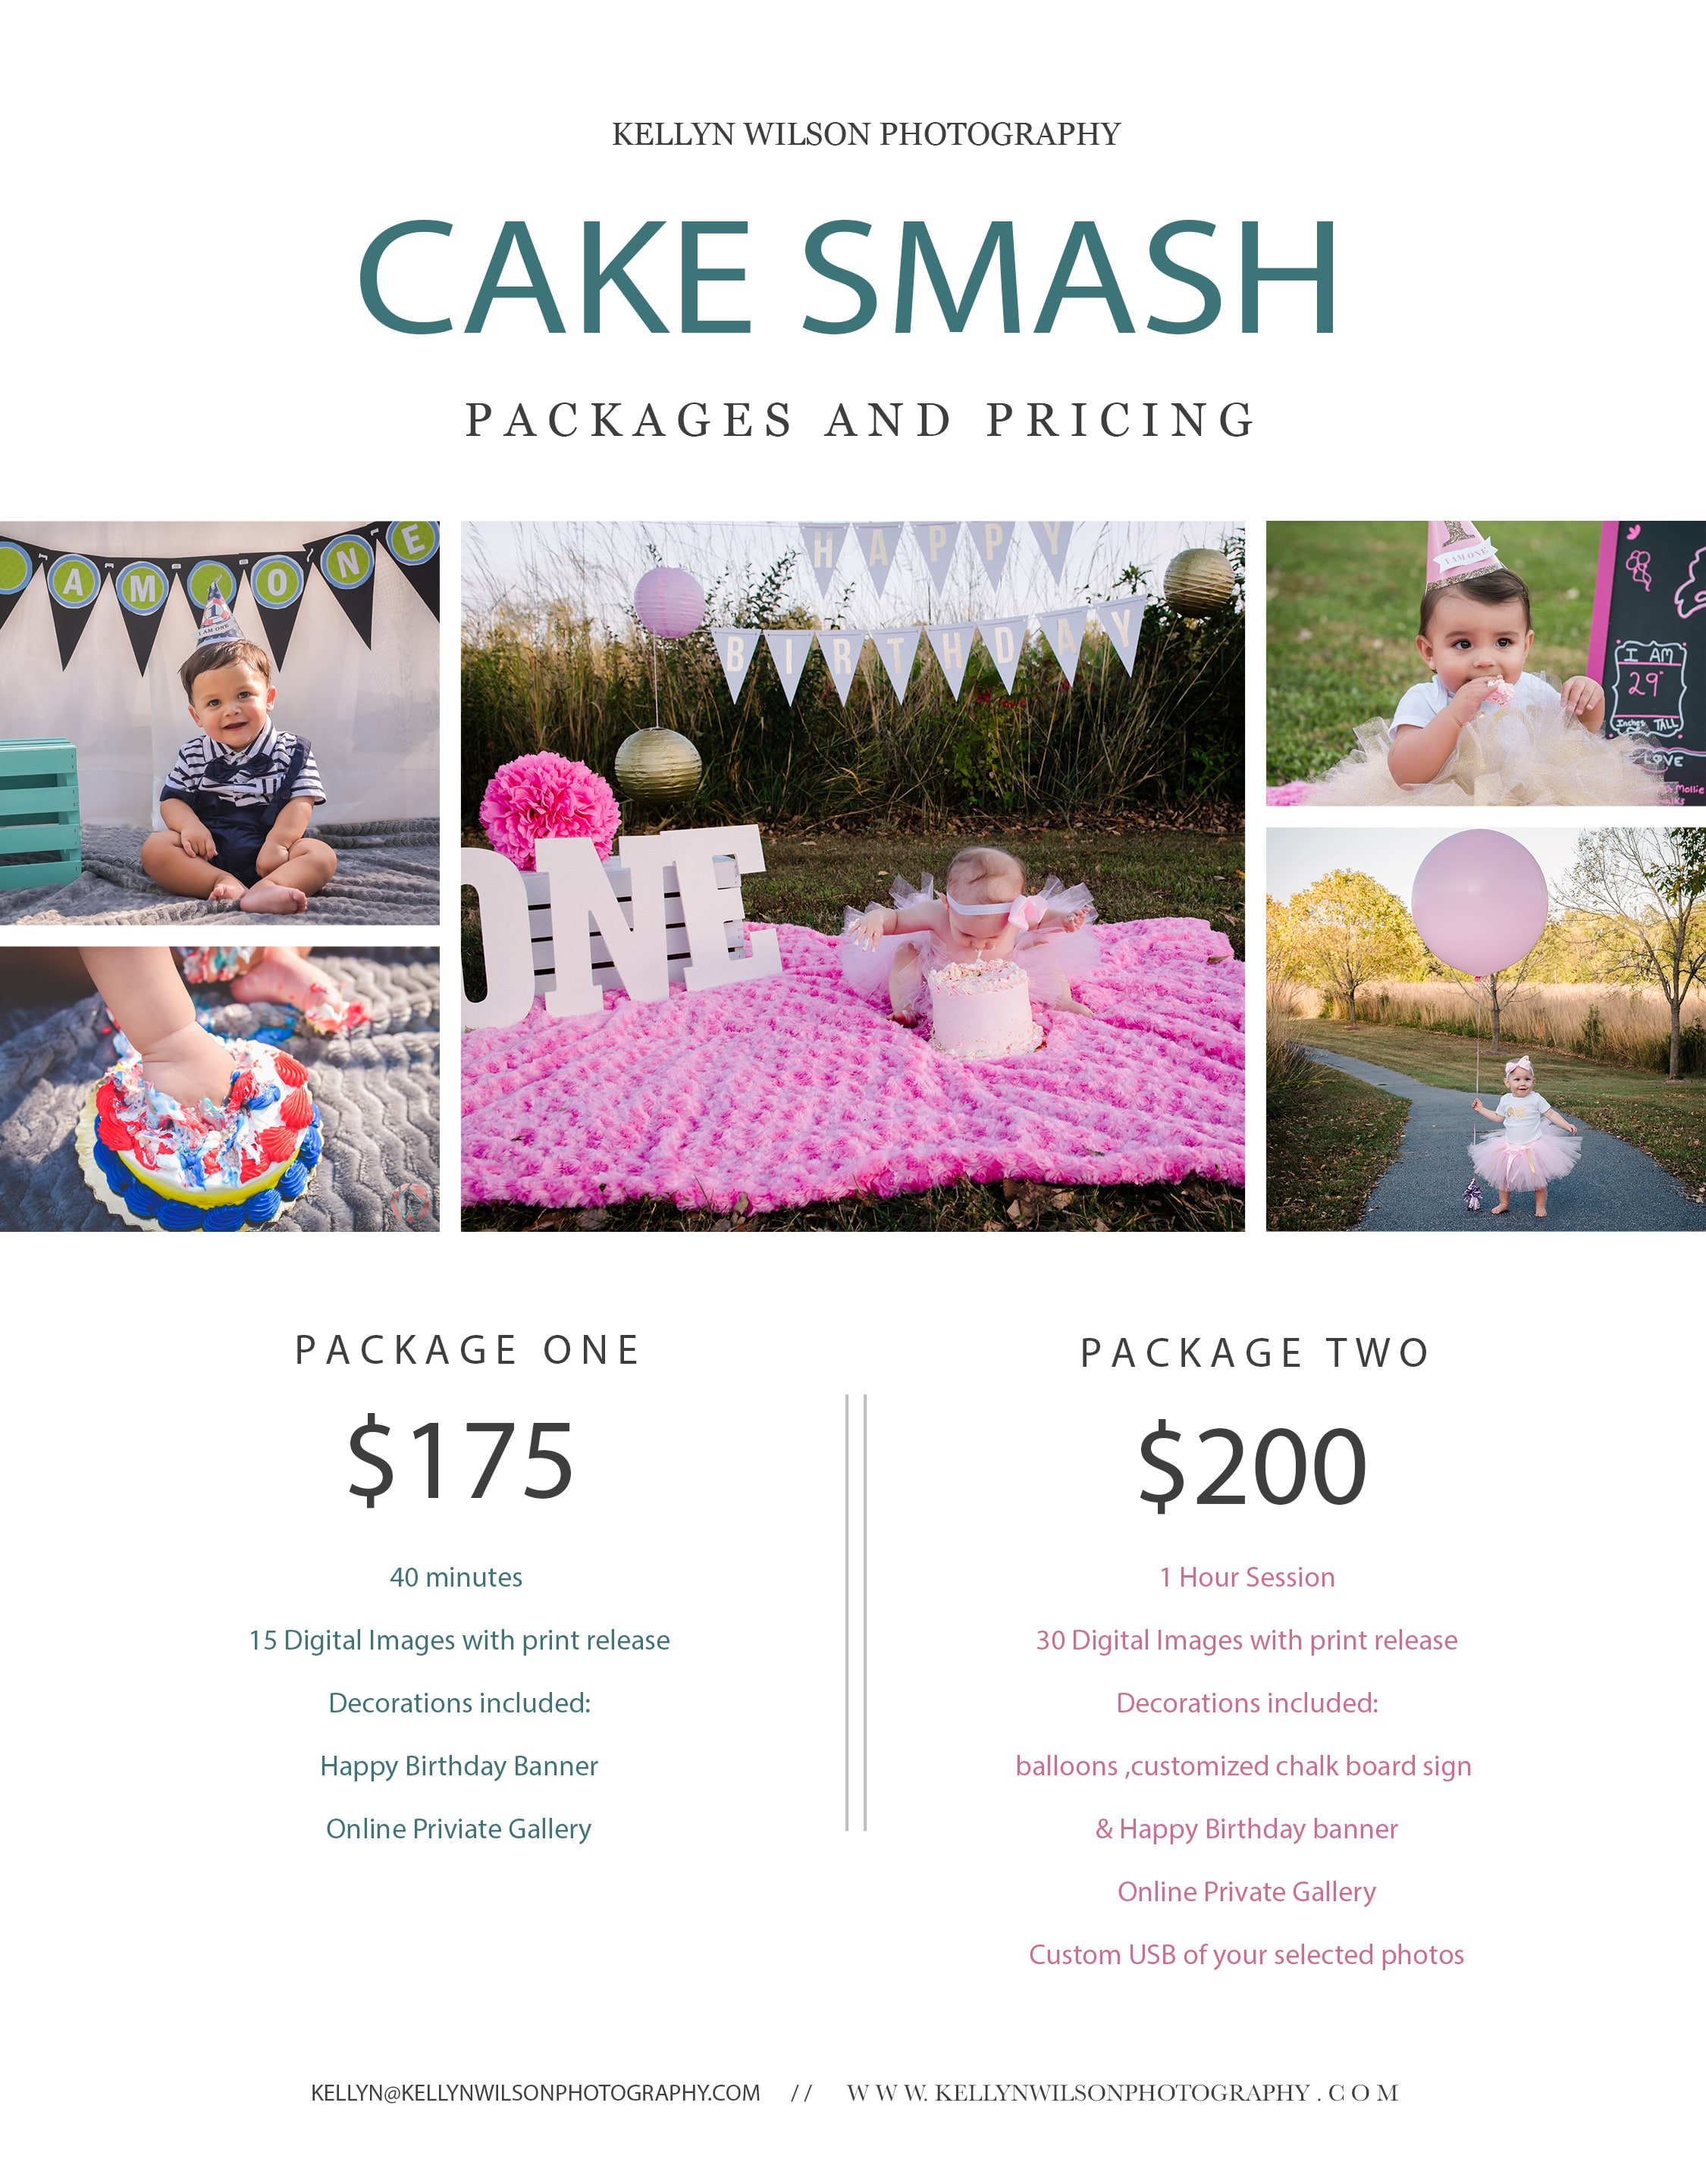 Celebrate your little one turning with a customized cake smash session!